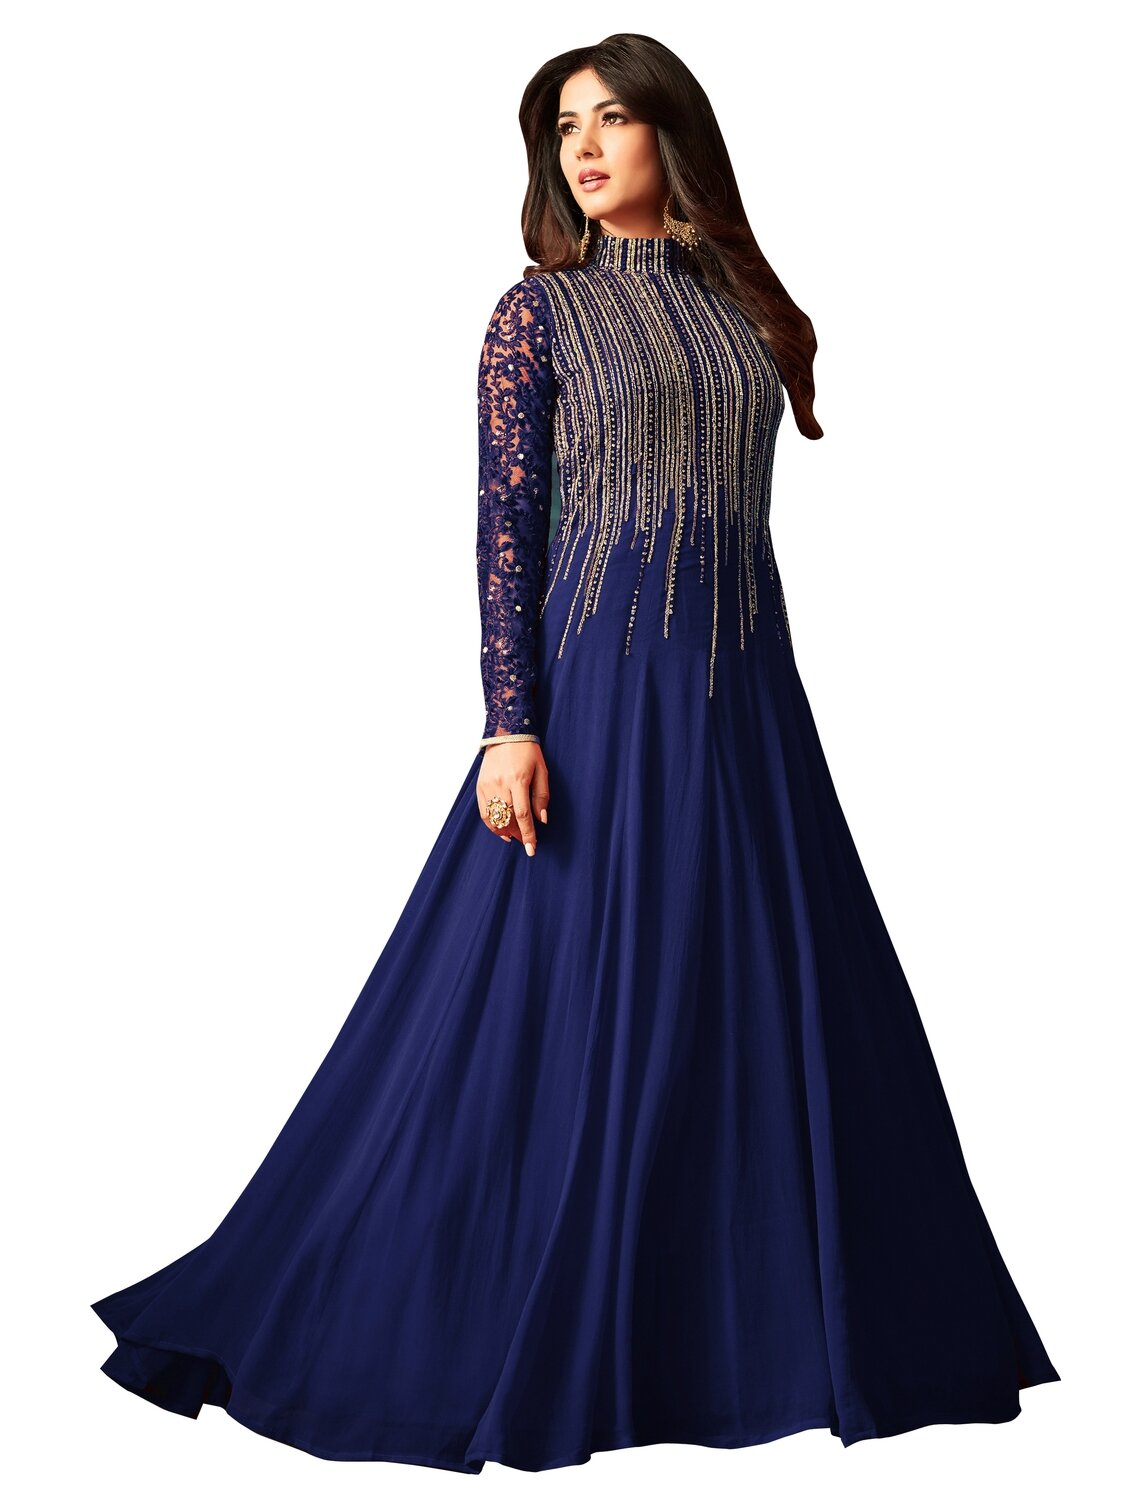 Sonal �Chauhan� Designer Georgette Embroidered Semi Stitched Long Anarkali Suit